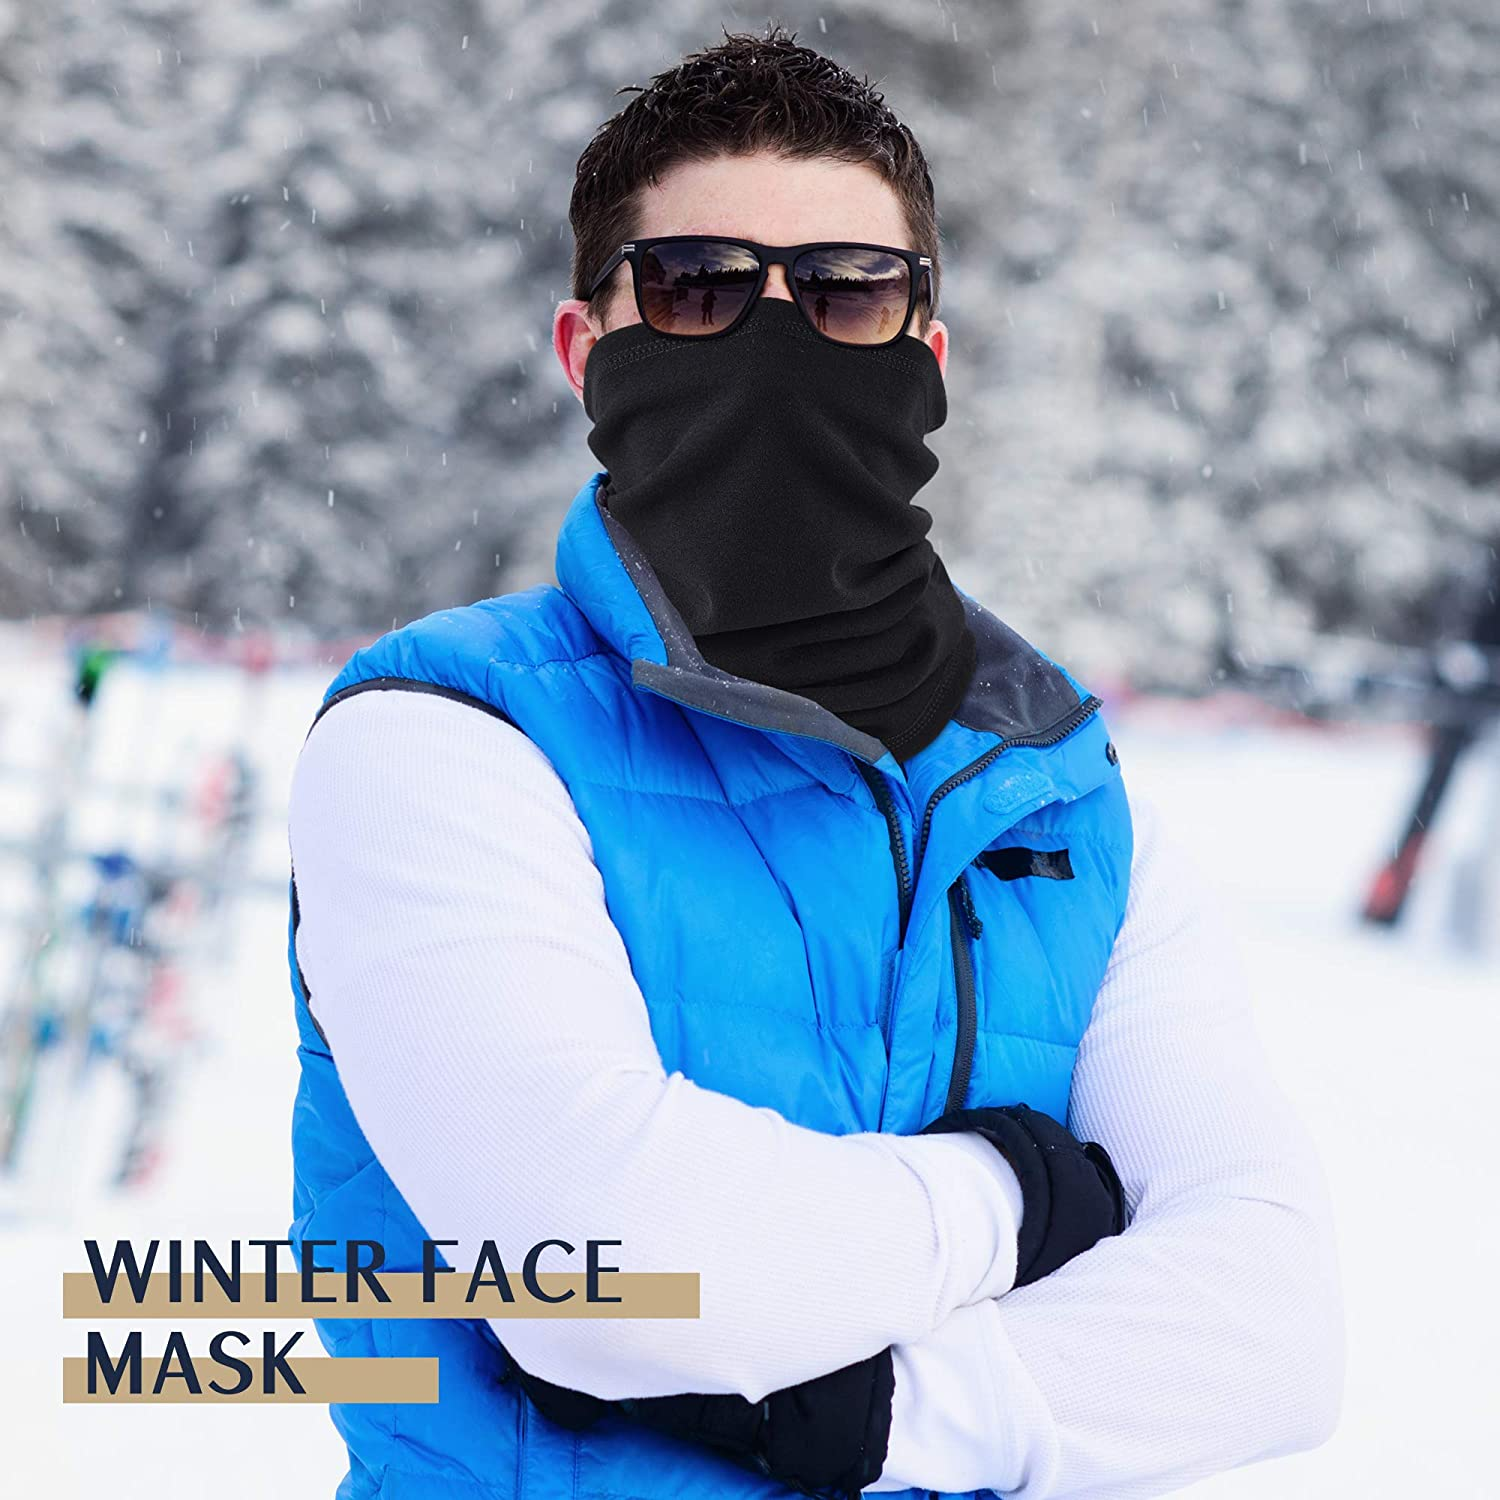 EXski Winter Neck Gaiter Warmer, Soft Fleece Face Mask Scarf for Cold Weather Skiing Cycling Outdoor Sports 1 Pack